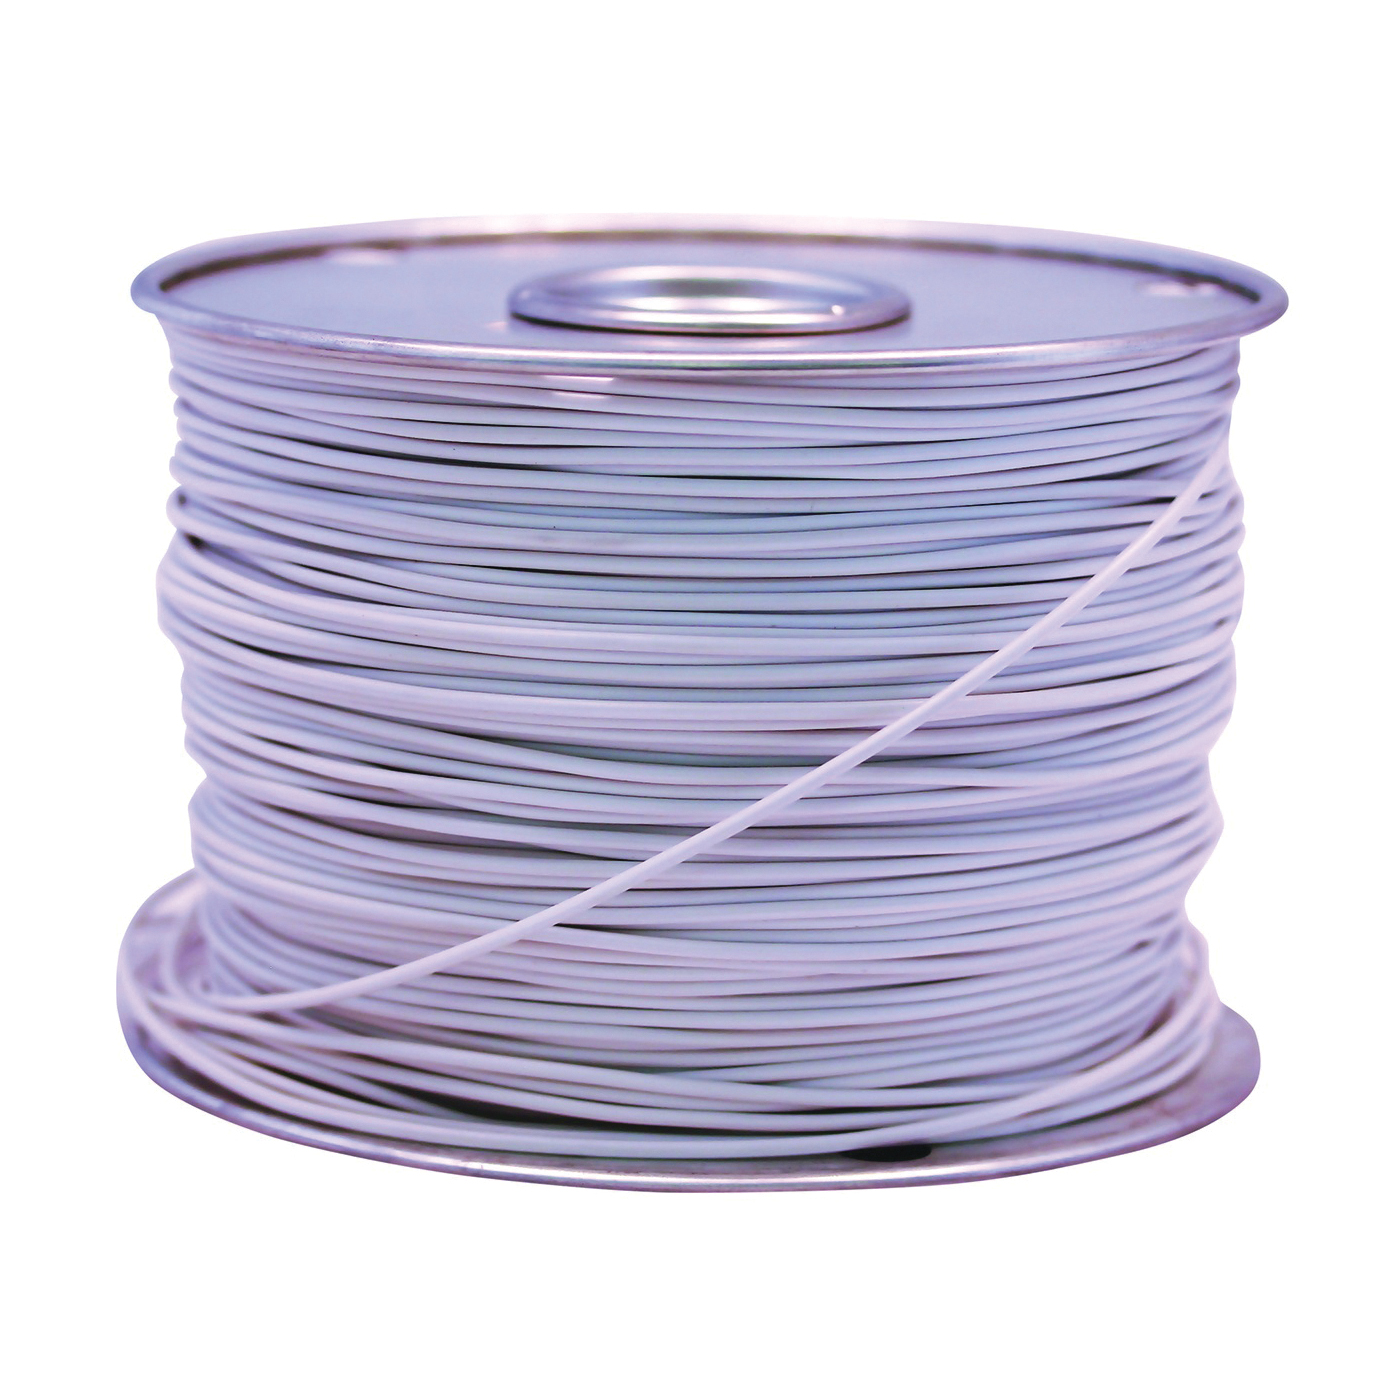 Picture of CCI 55671423 Primary Wire, 12 AWG Wire, 1 -Conductor, 60 VDC, Stranded Copper Conductor, White Sheath